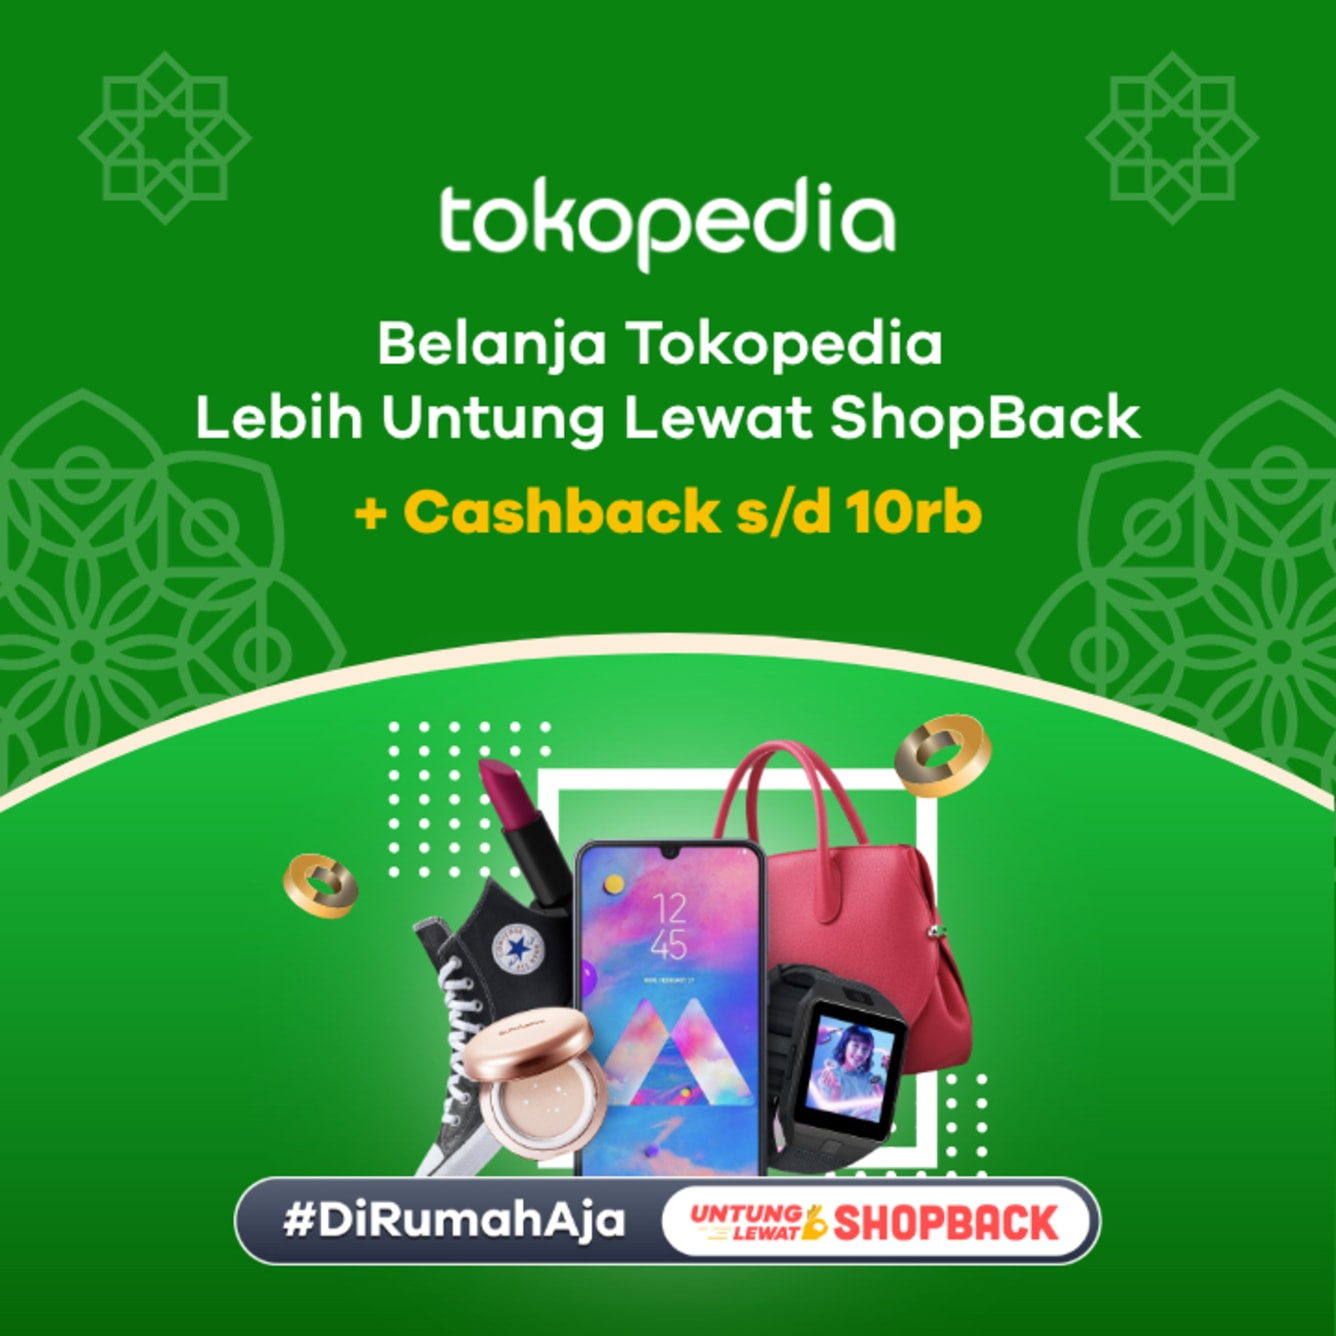 Week 22 - Promo Tokopedia Project